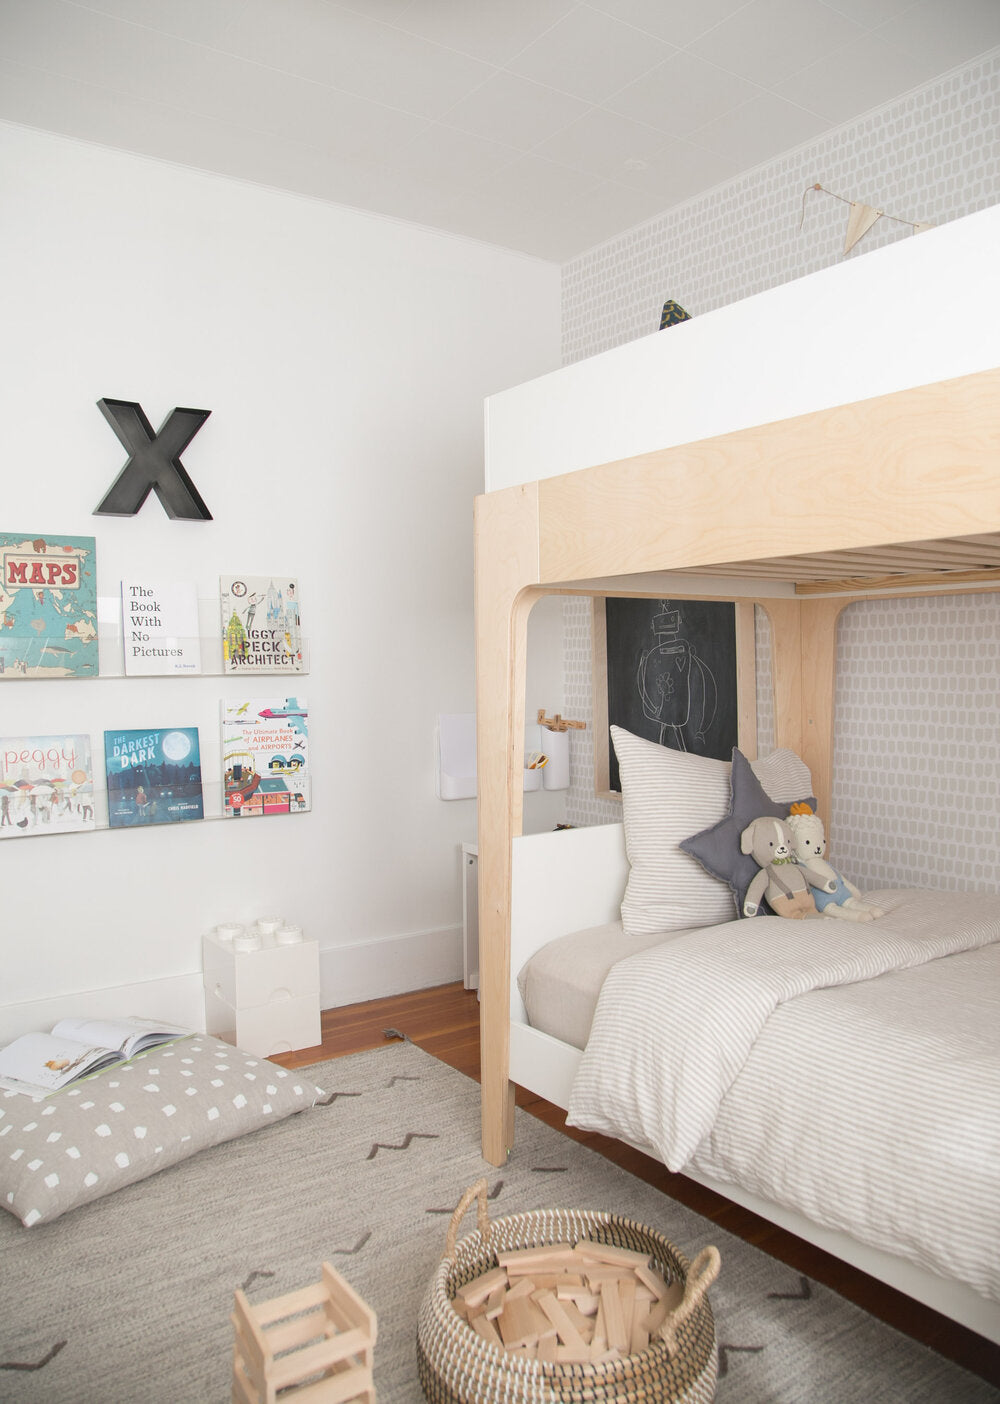 Boys room interior with floating book wall, wood bunk bed, light removable wallpaper and grey color area rug